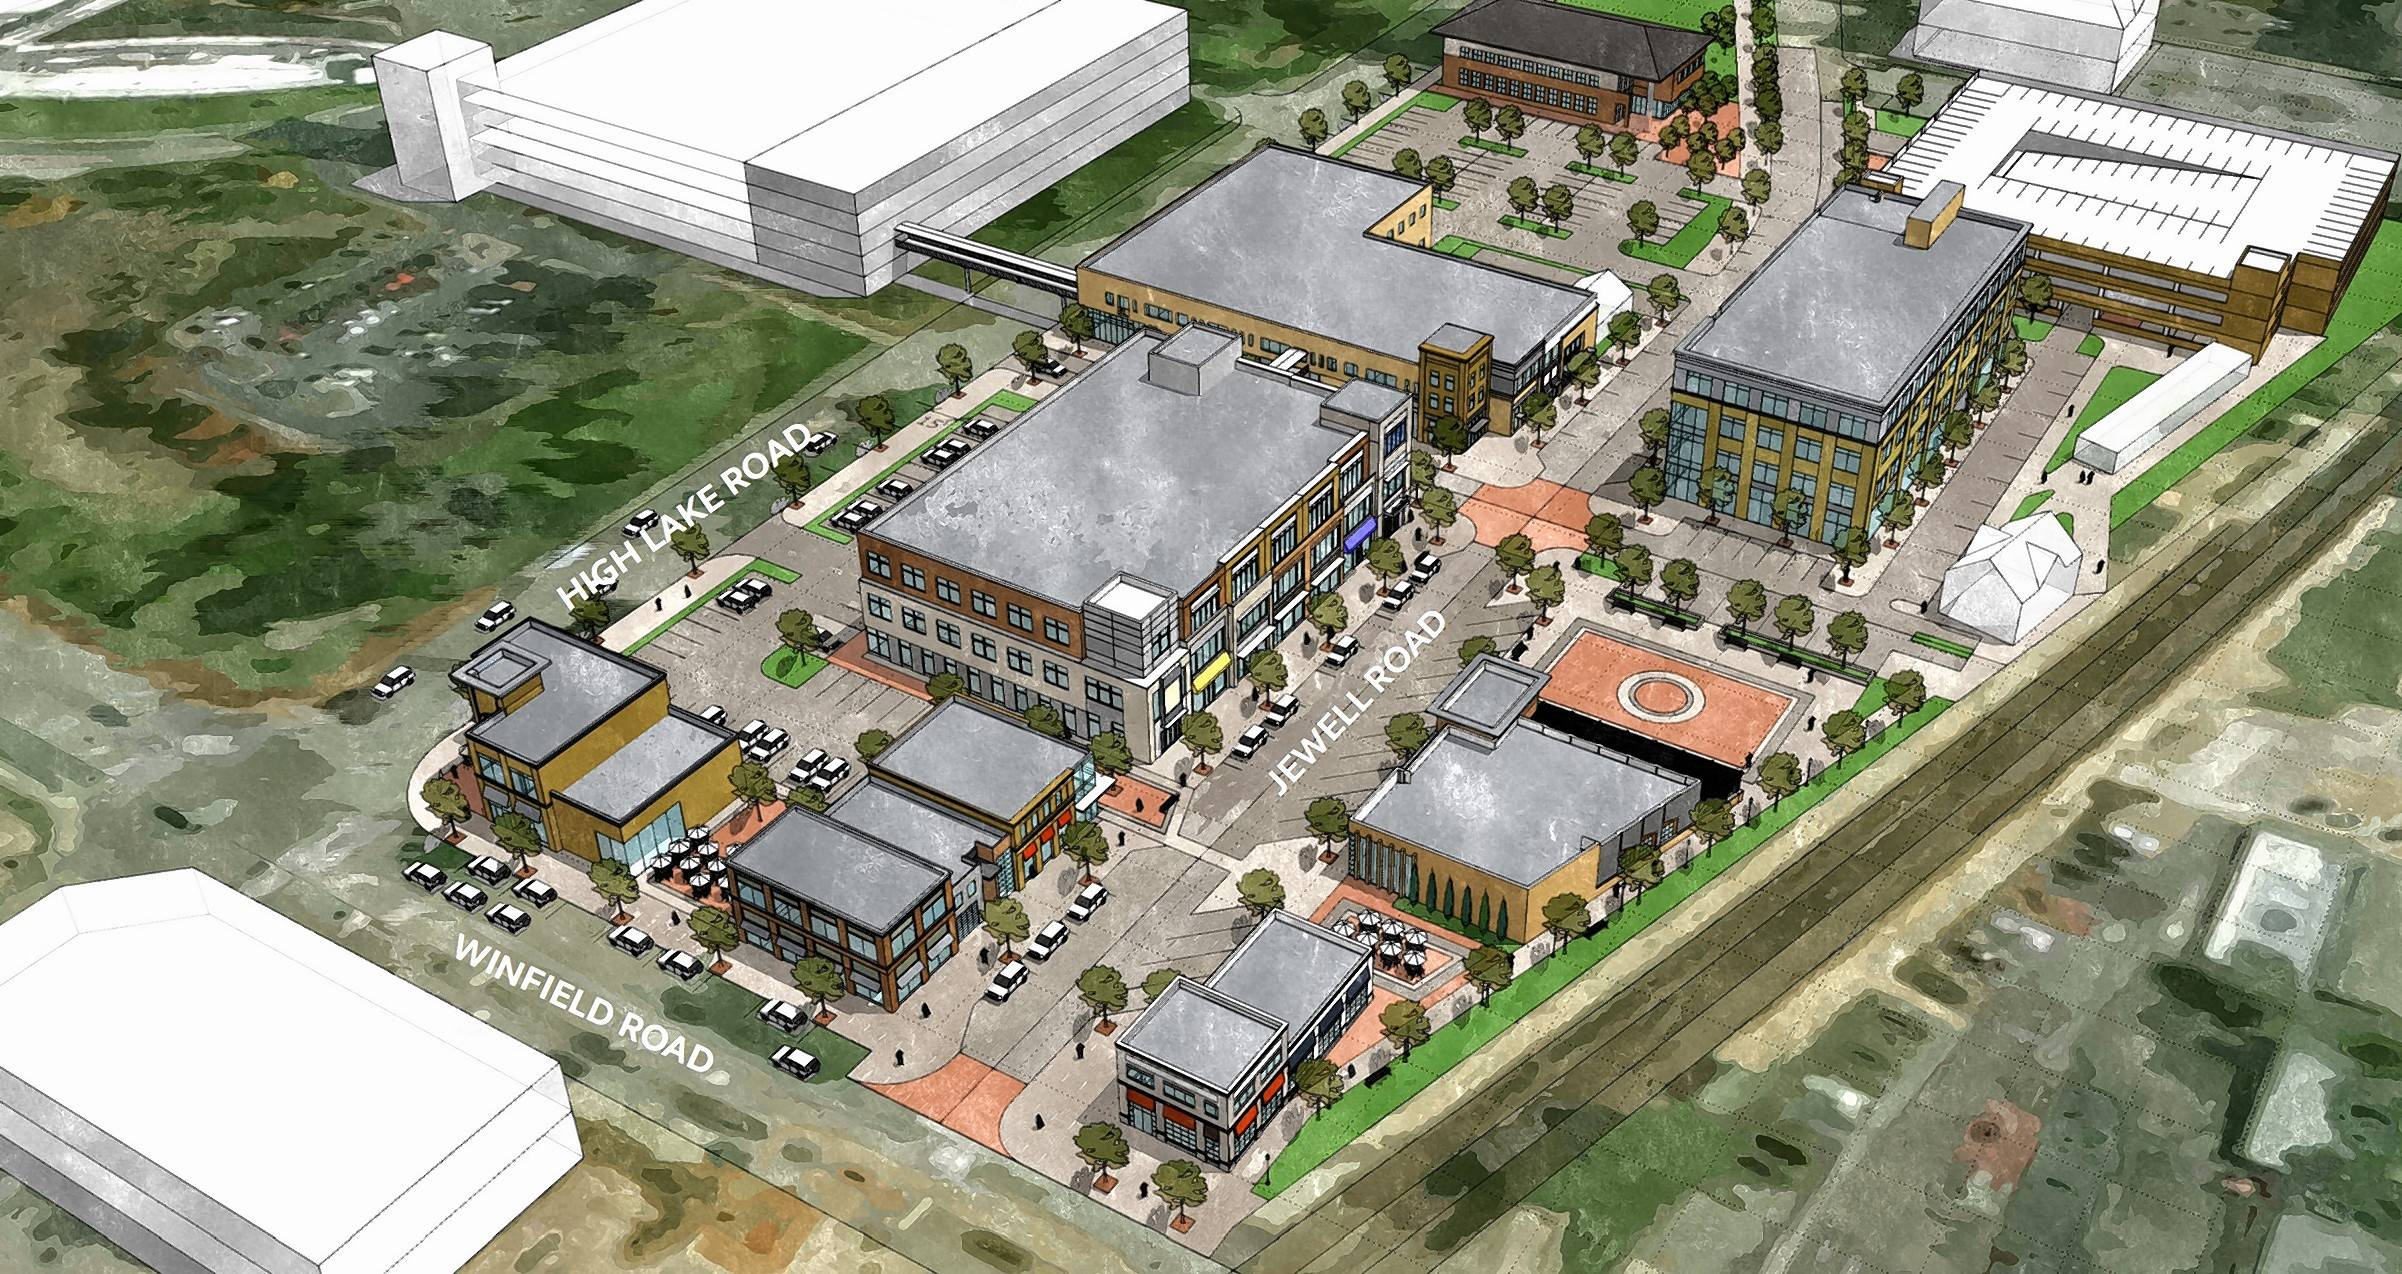 Conceptual plans show a major redevelopment that would change the face of Winfield's Town Center to the south of Central DuPage Hospital.